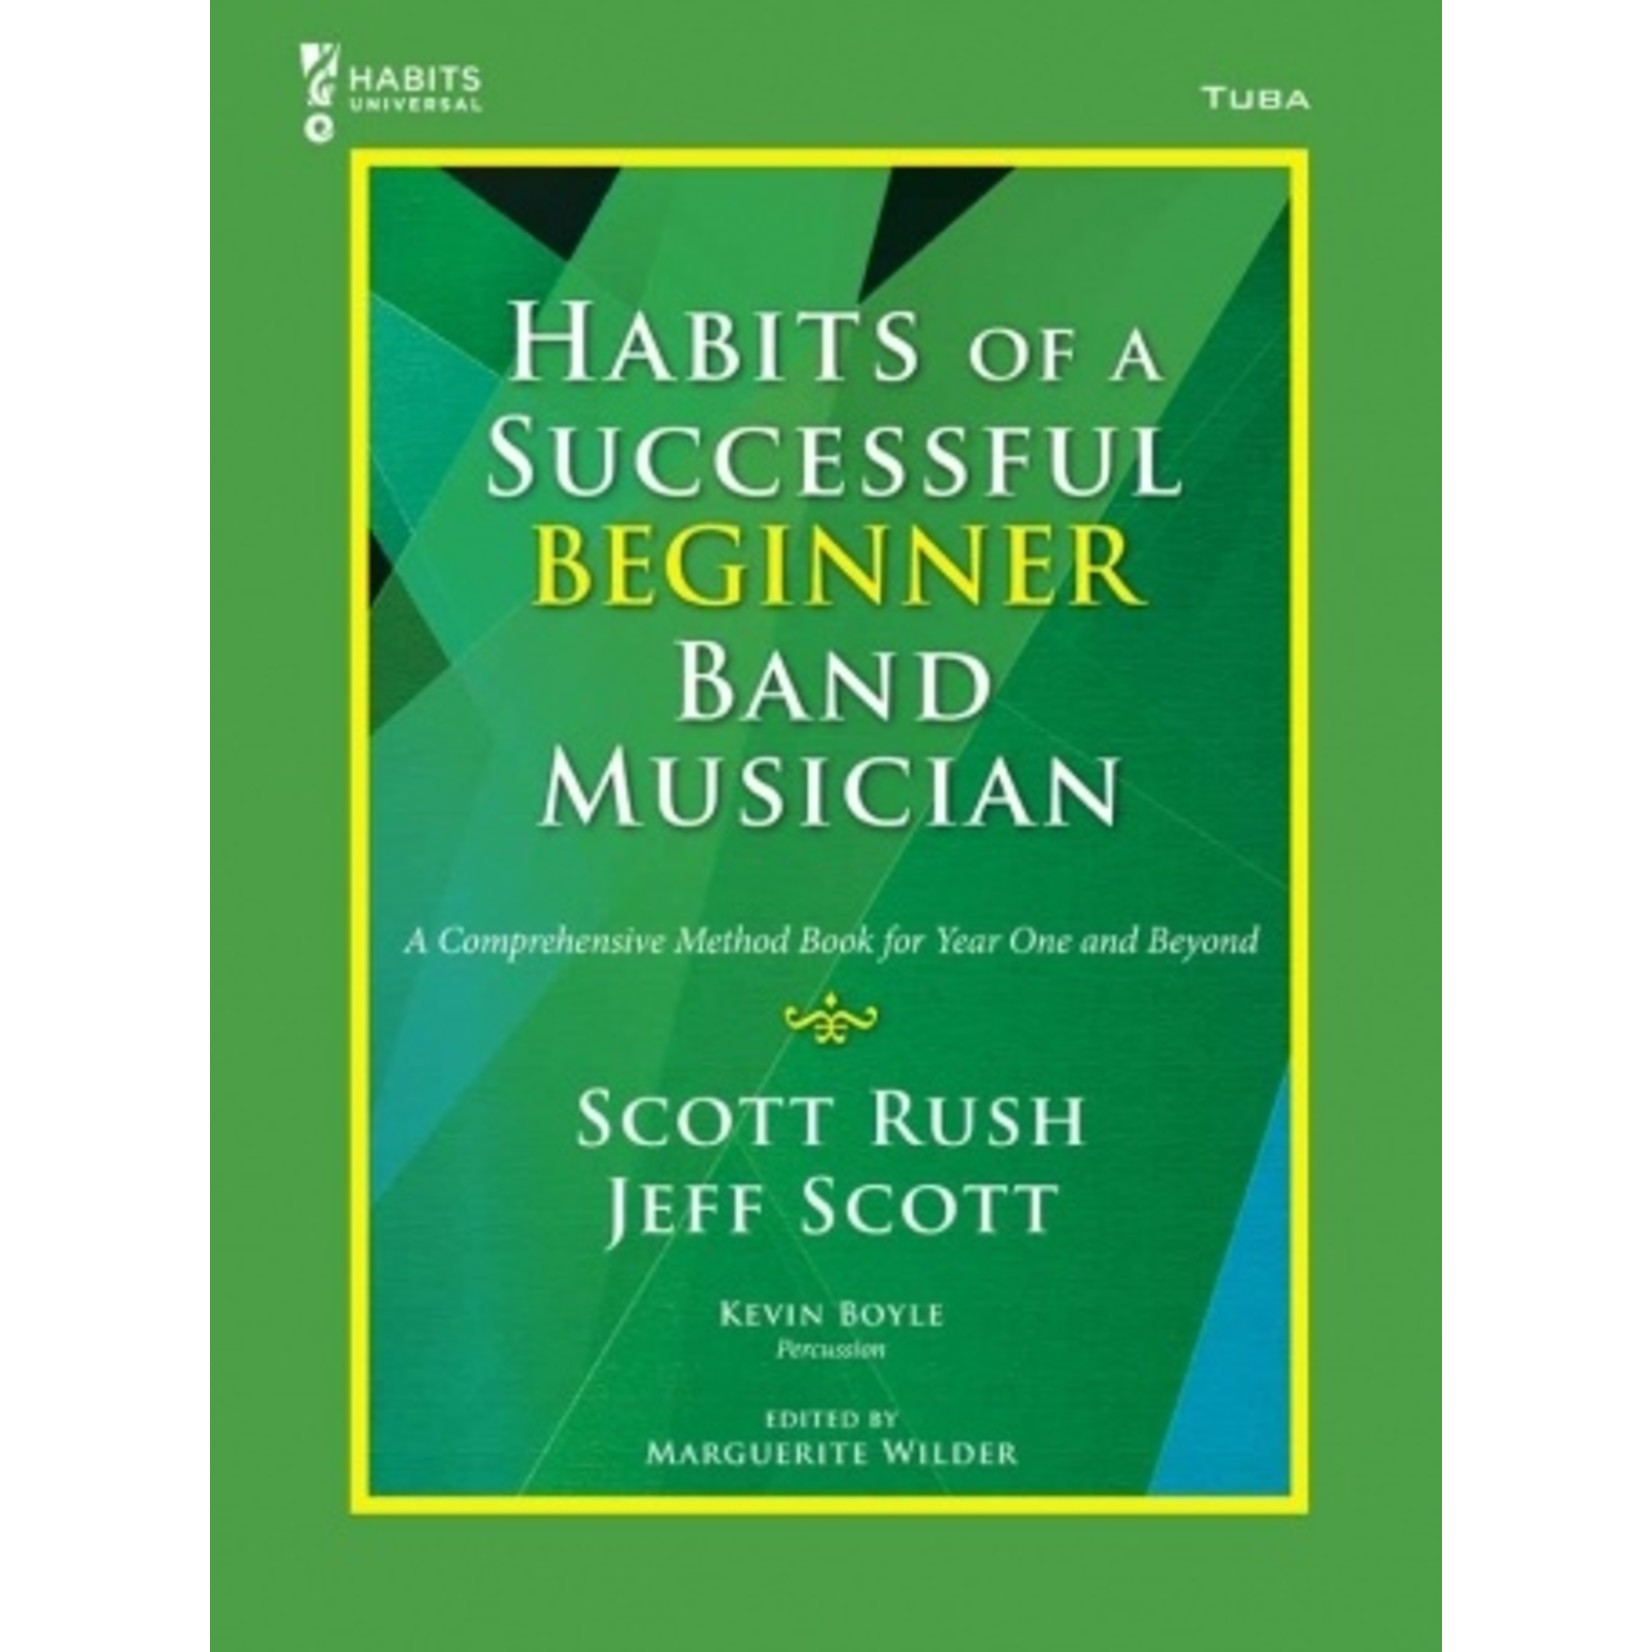 Habits of a Successful Beginner Band Musician - Tuba